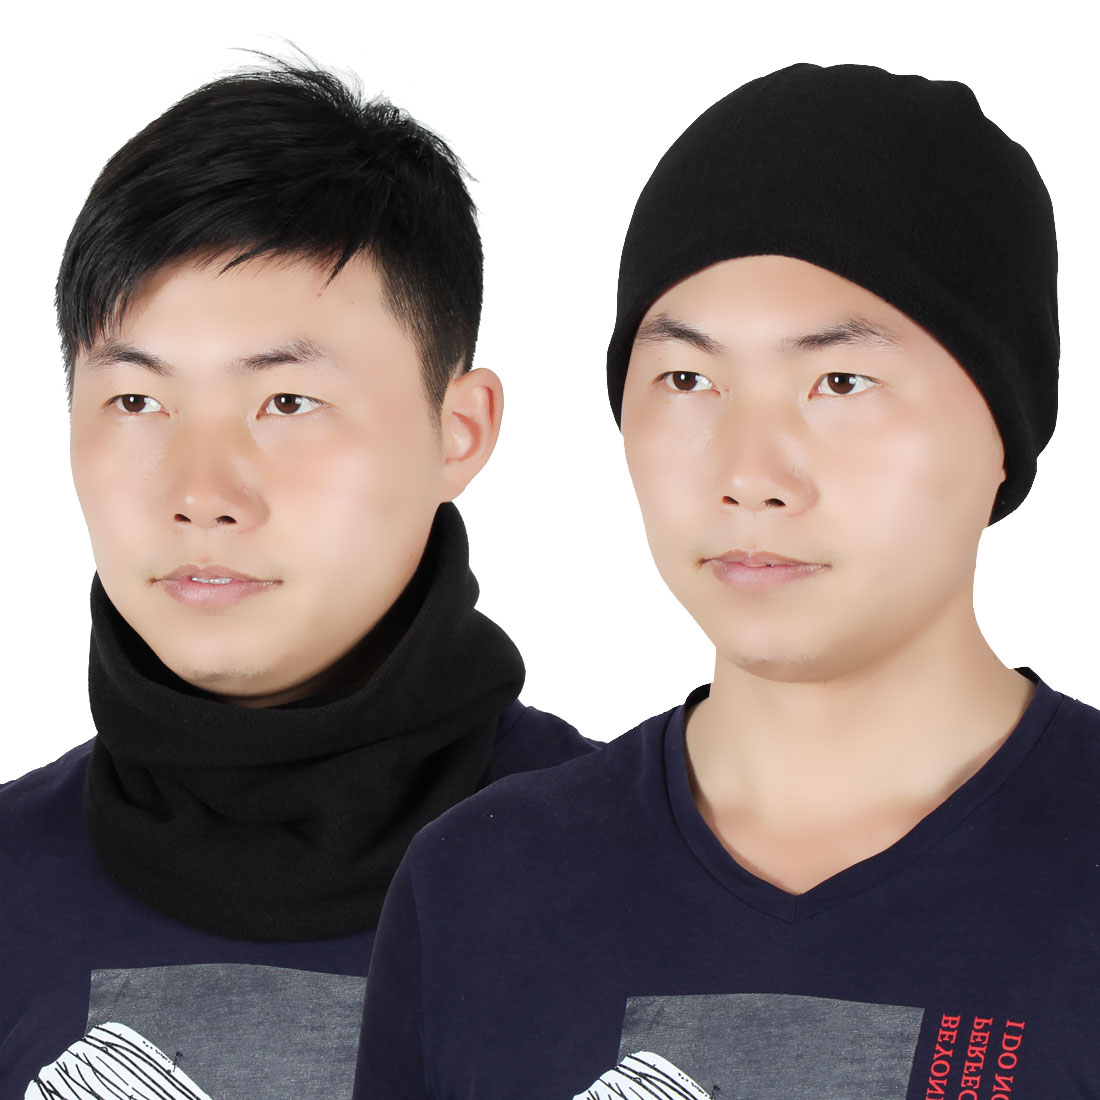 Adjustable Face Mask Winter Neck Tube Protector Outdoor Cycling Scarf Wrap Black by